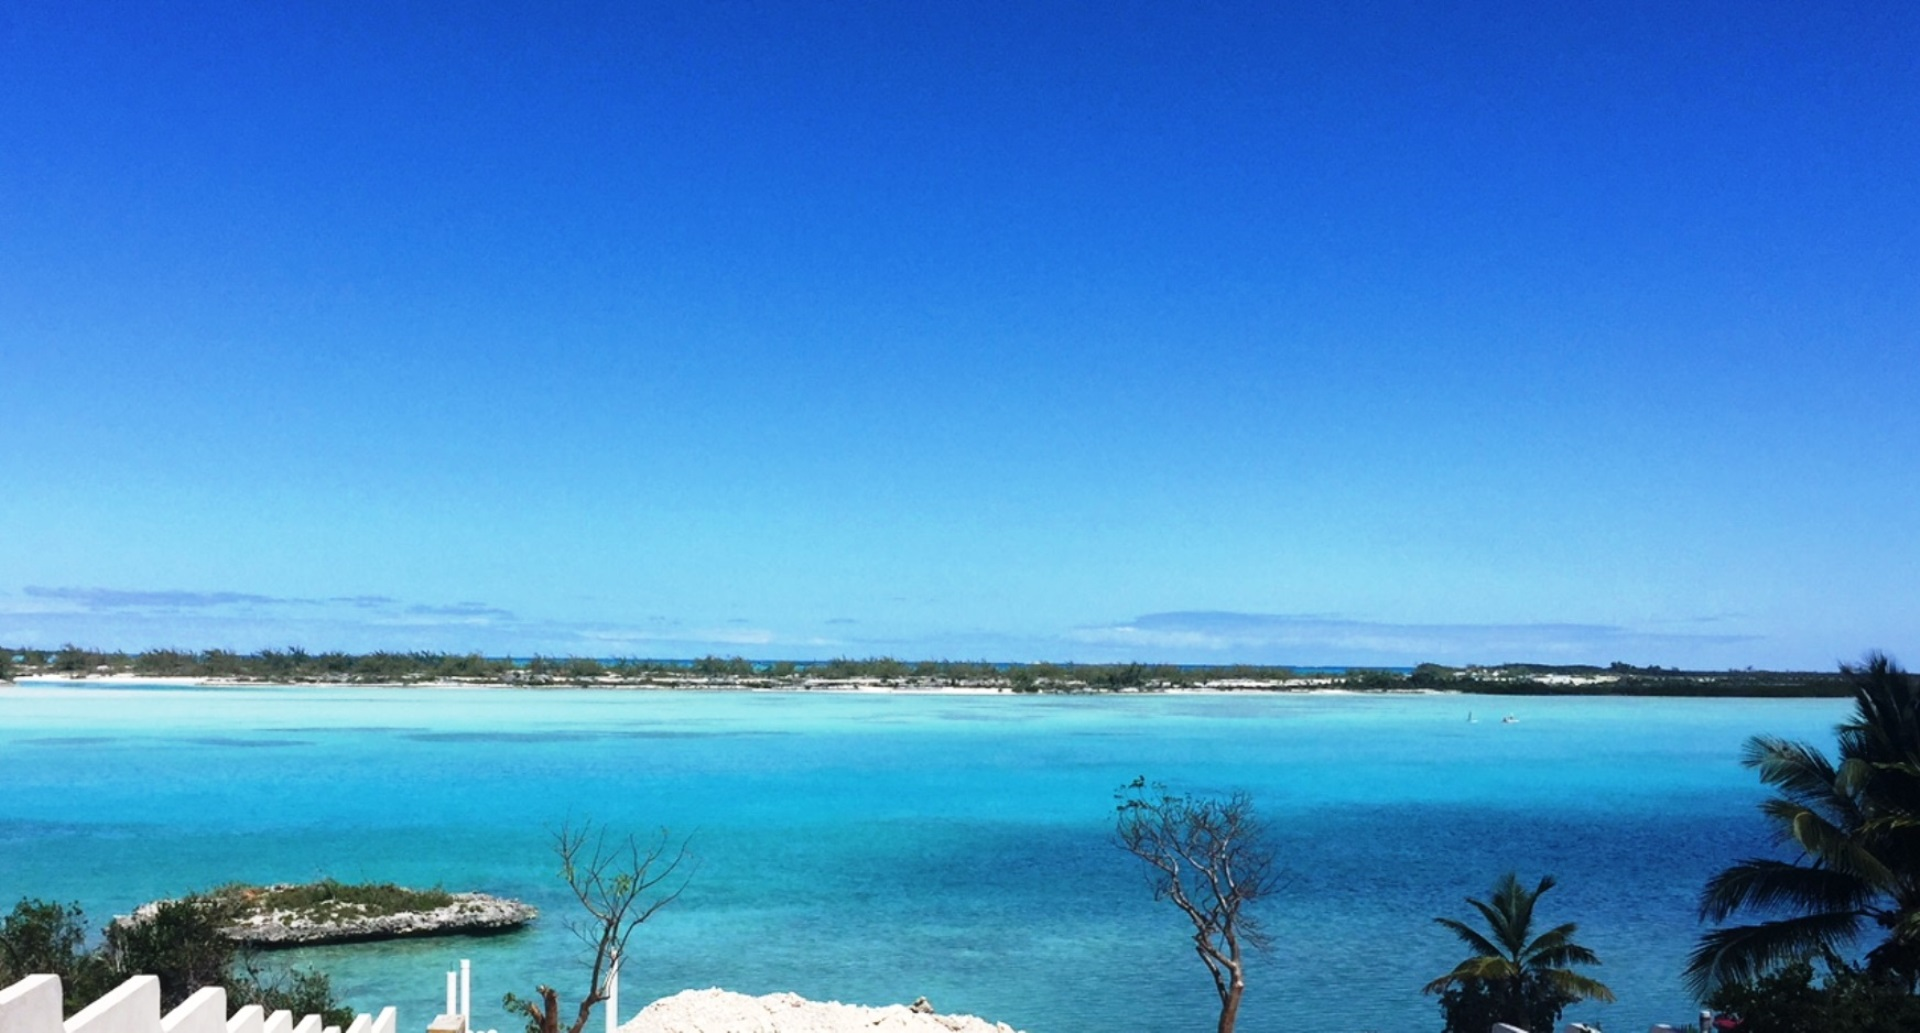 Land for Sale at Side-by-Side Vacant Lots Overlooking Moriah Harbour - MLS 32773 Bahama Sound, Exuma, Bahamas